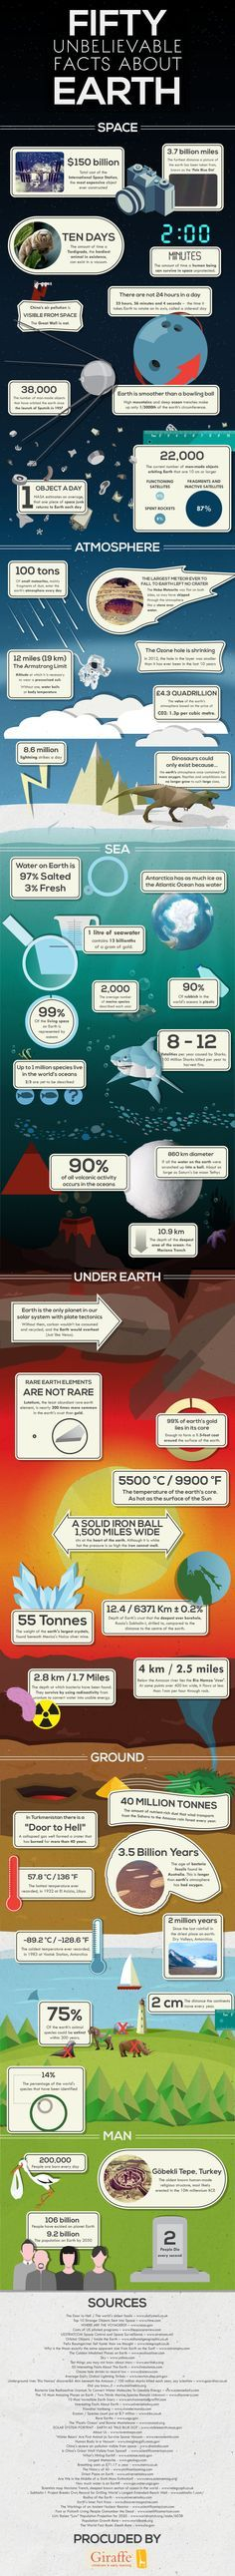 50 Amazing Facts About Earth